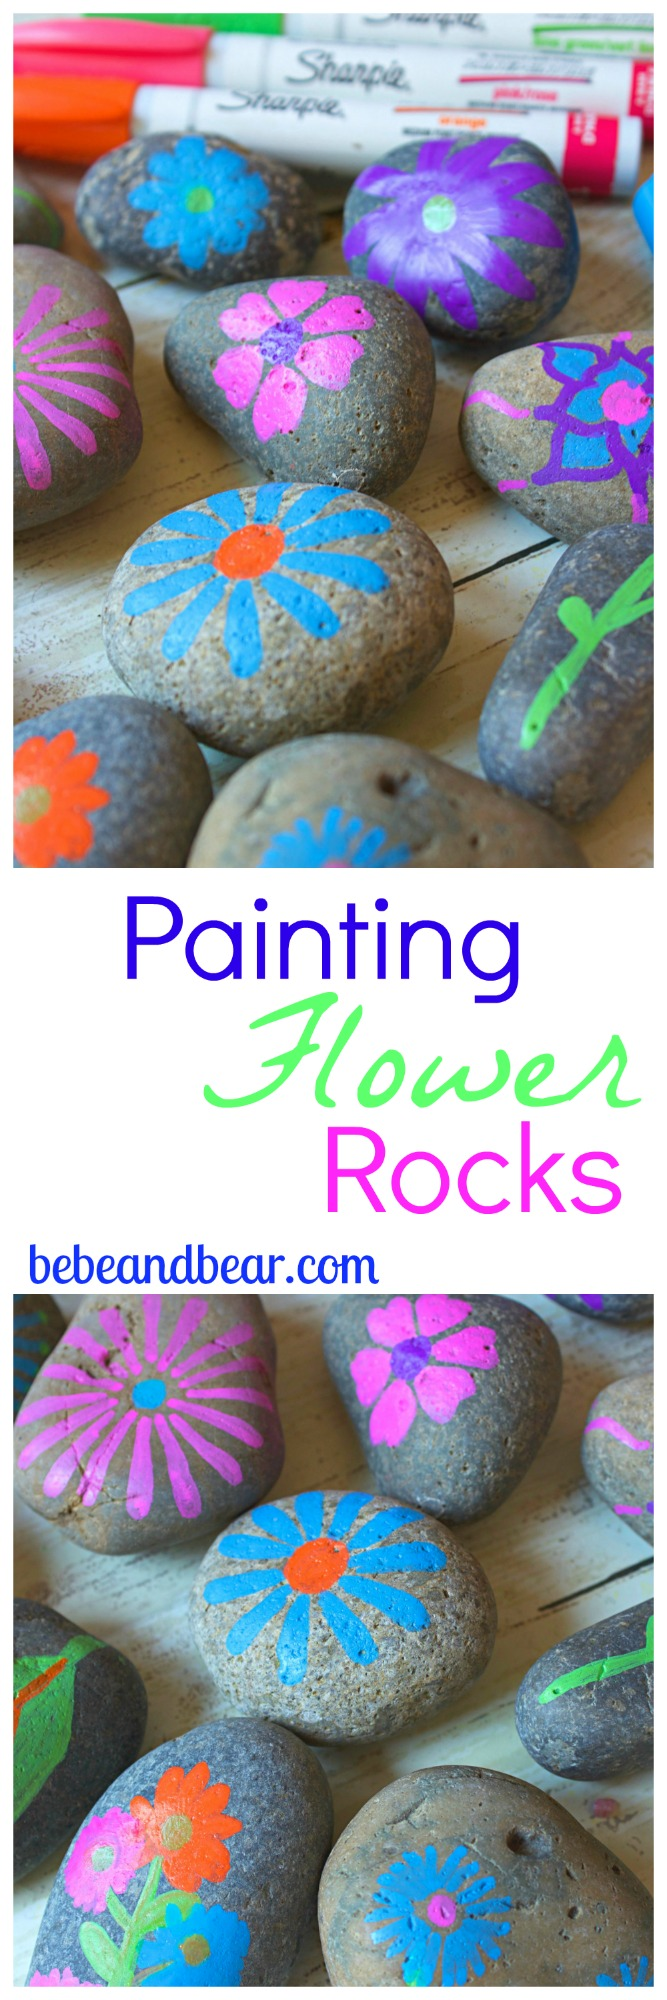 Painting Flower Rocks. Crafts for Kids.